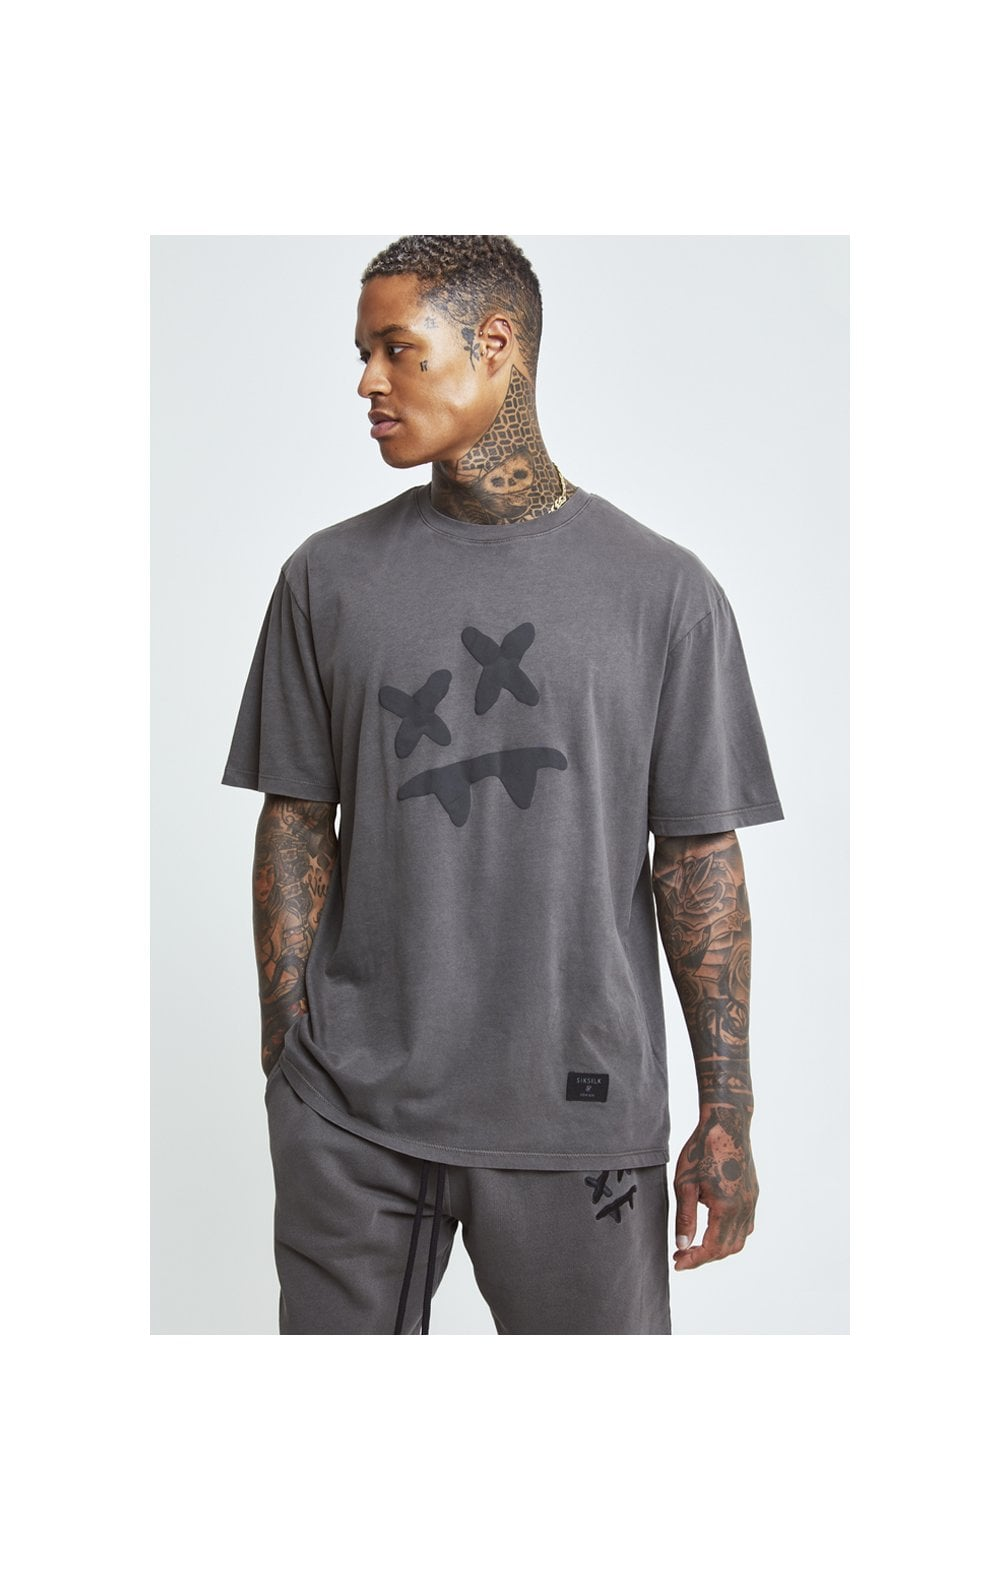 Load image into Gallery viewer, SikSilk X Steve Aoki S/S Oversize Essential Tee – Washed Grey